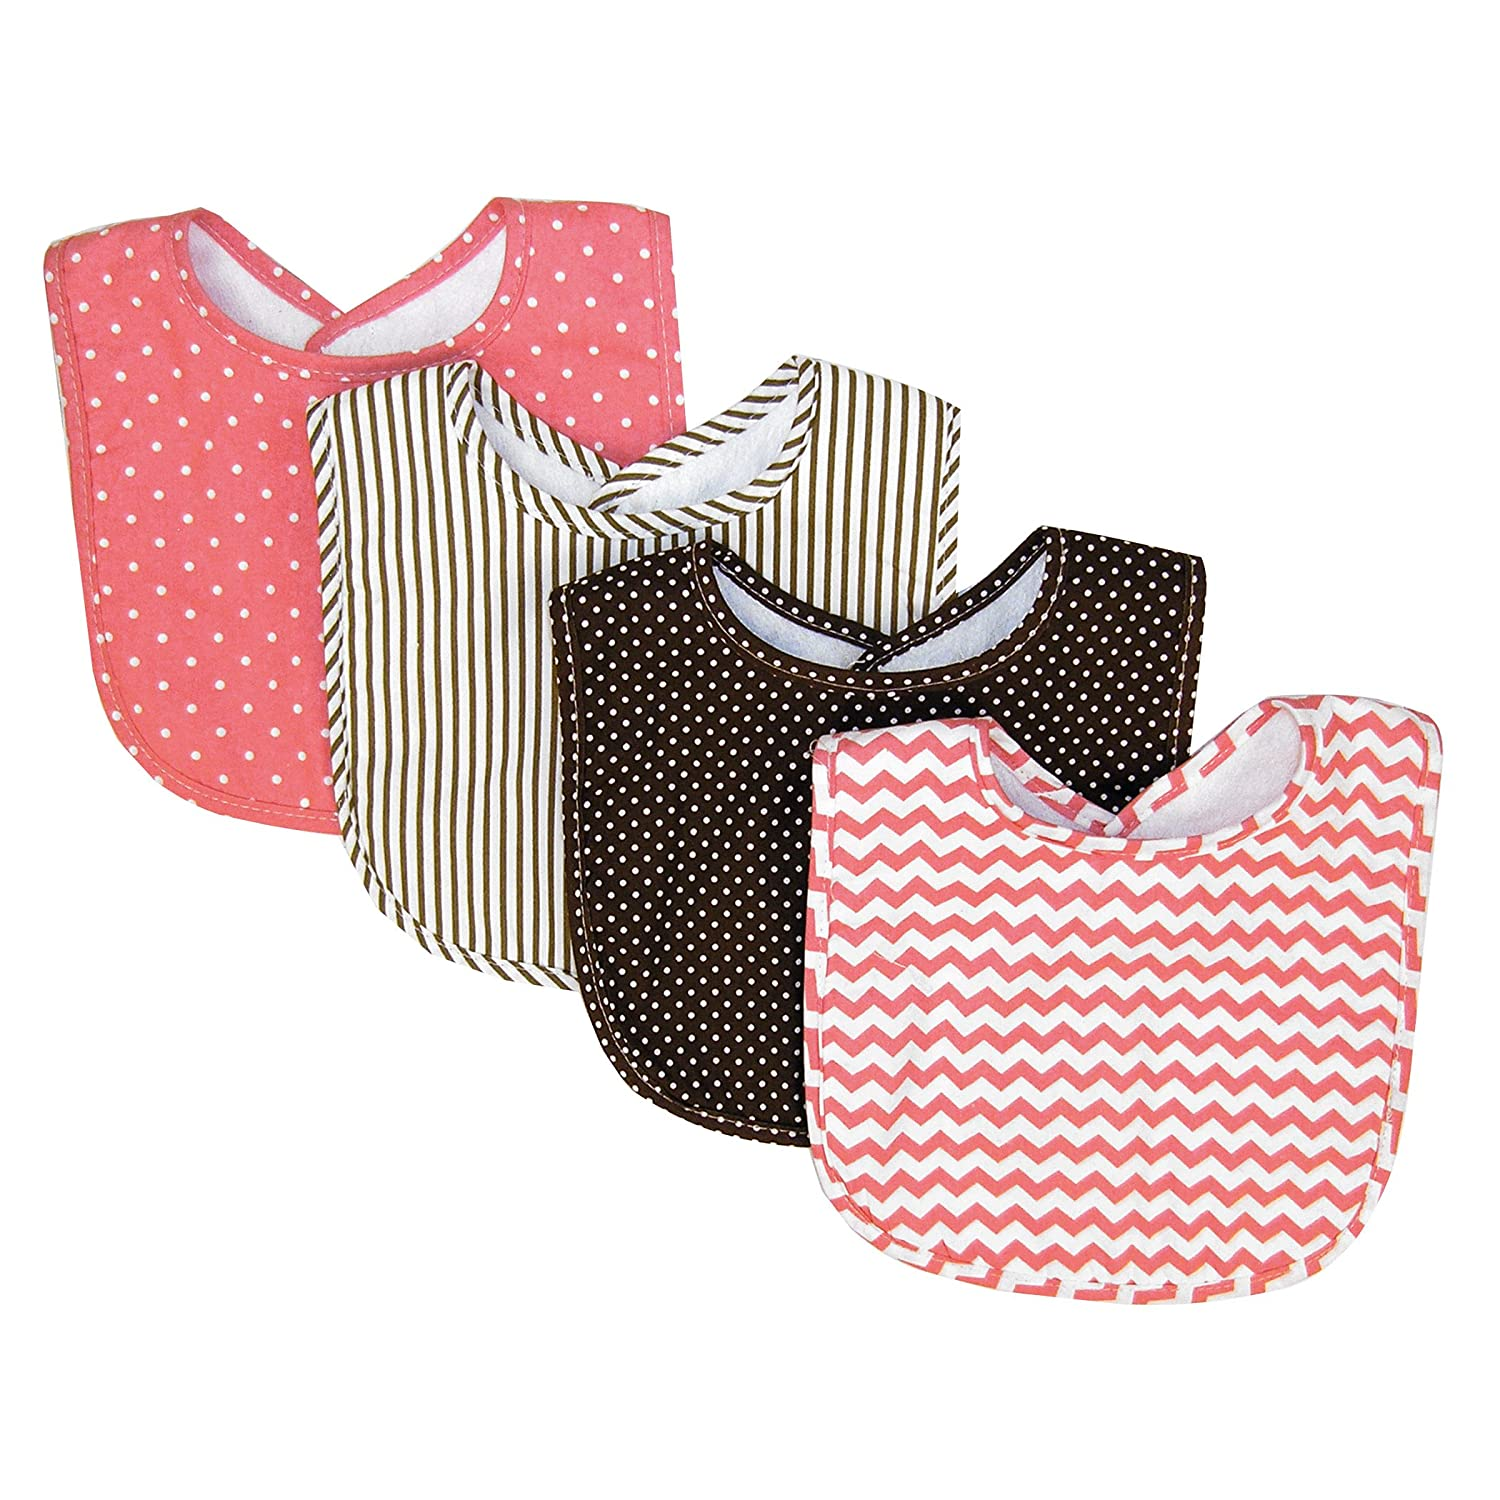 Trend Lab Northwoods Bib Set, Red/Tan, 4-Count 101415